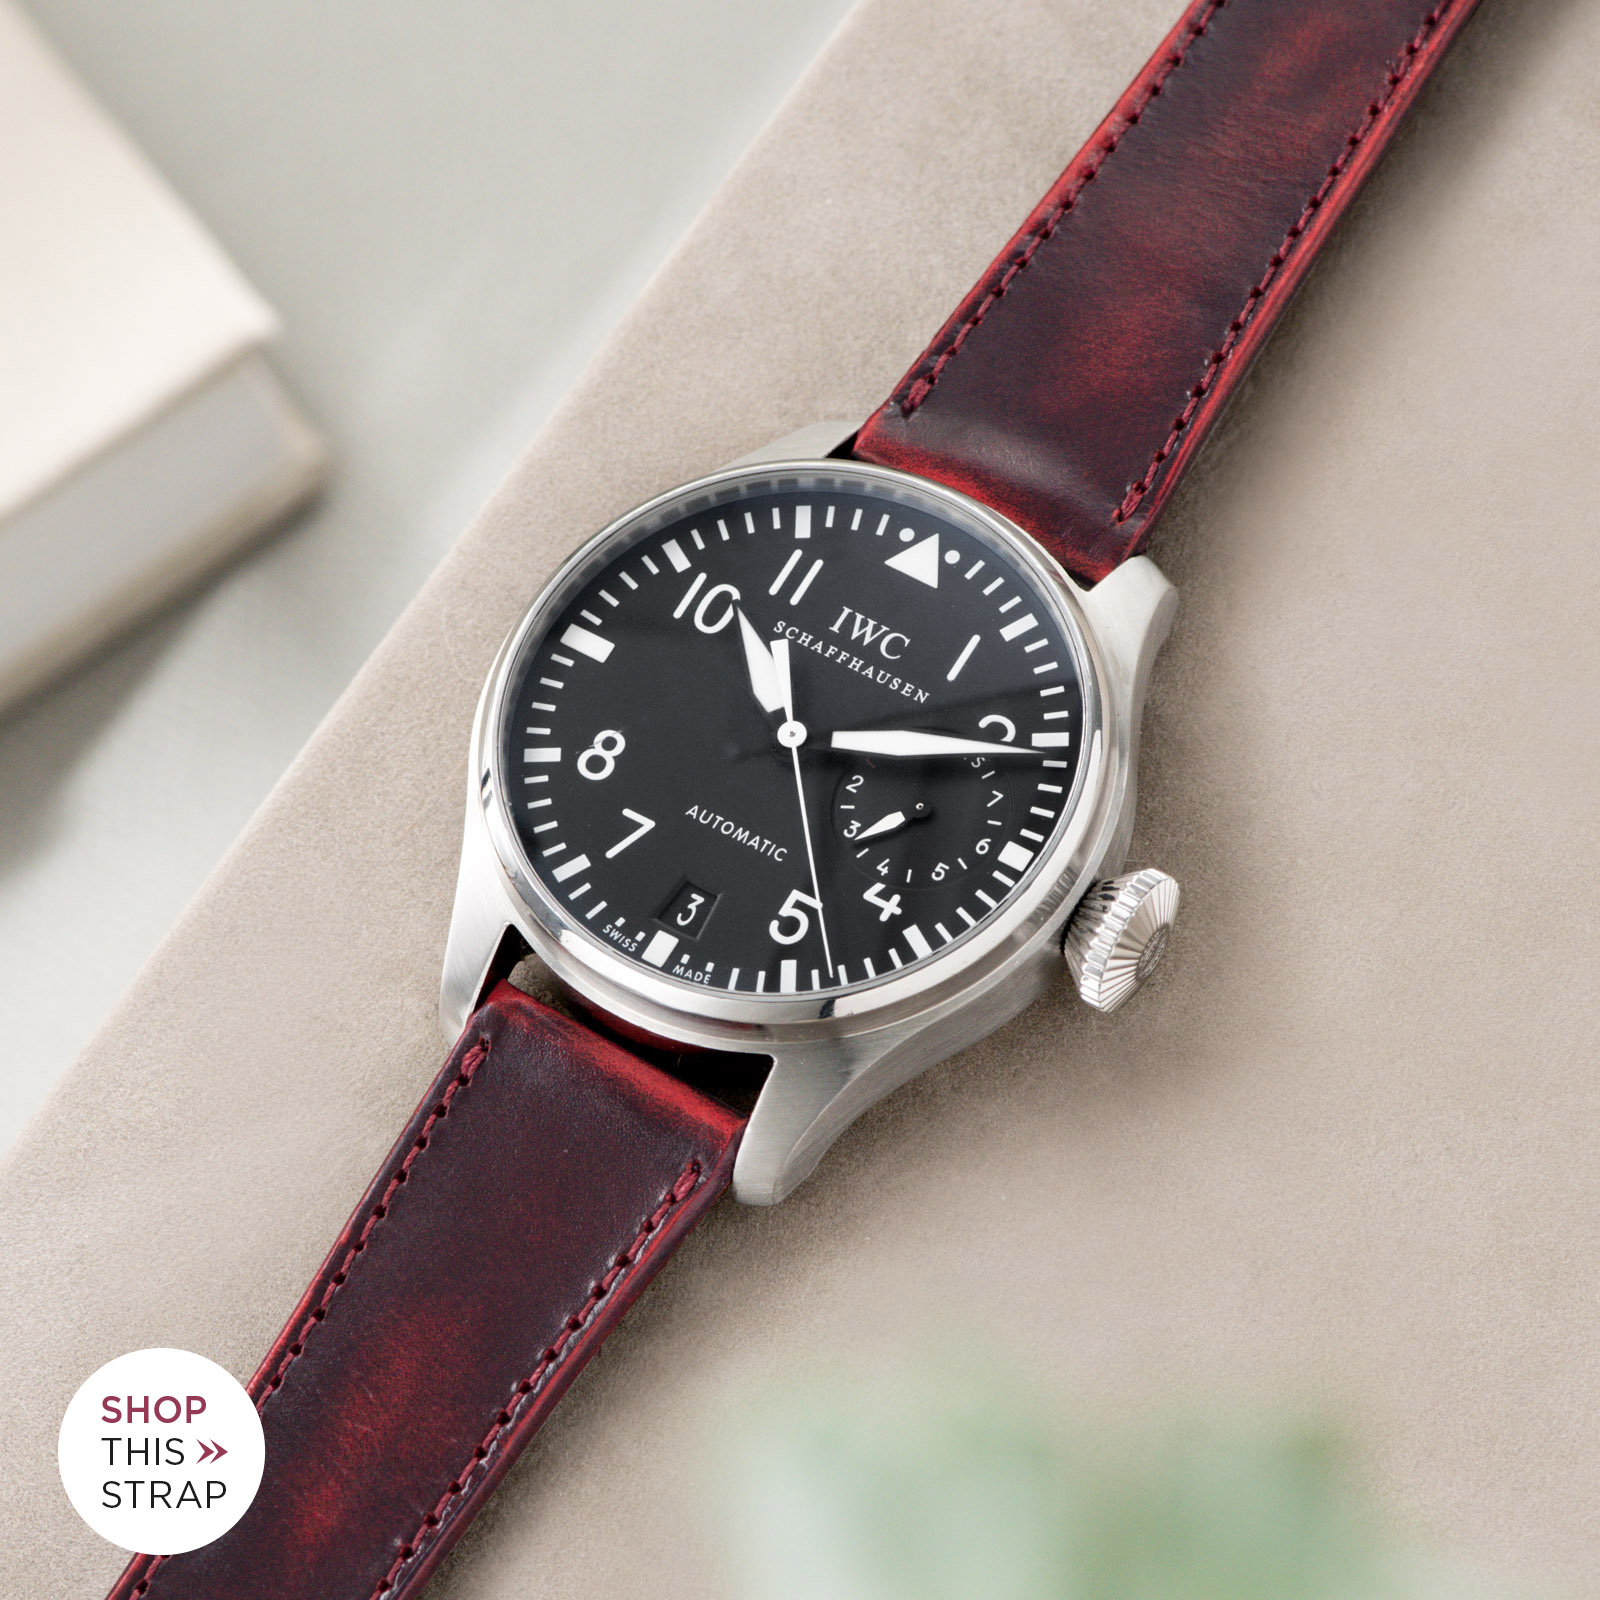 Bulang and Sons_Strap Guide_IWC Big Pilot ref IW5004_Degrade Chili Red Leather Watch Strap